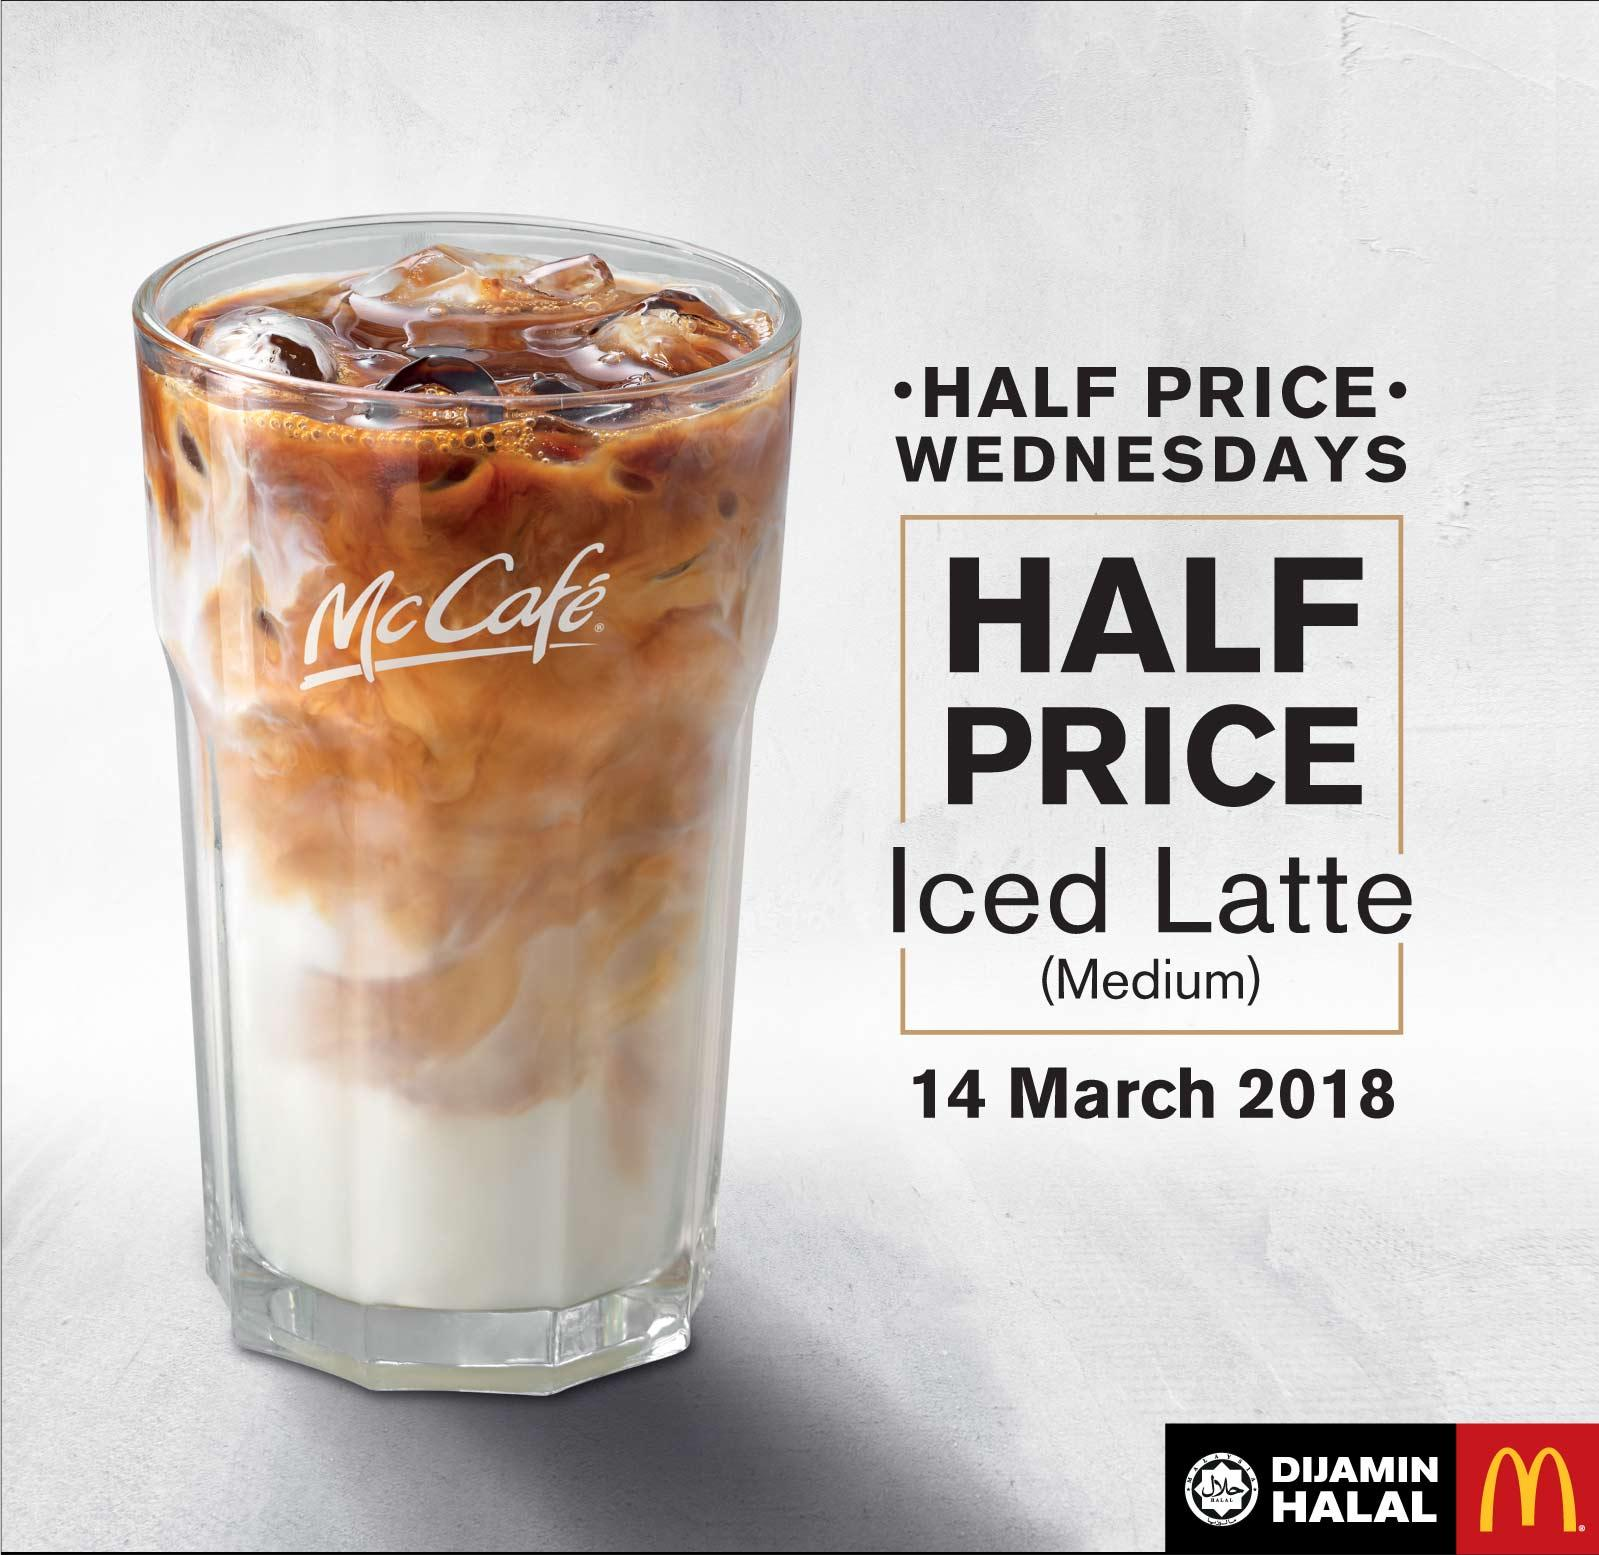 Mcdonald Wholesale Home: McDonald's McCafe Promotion Half Price Wednesday